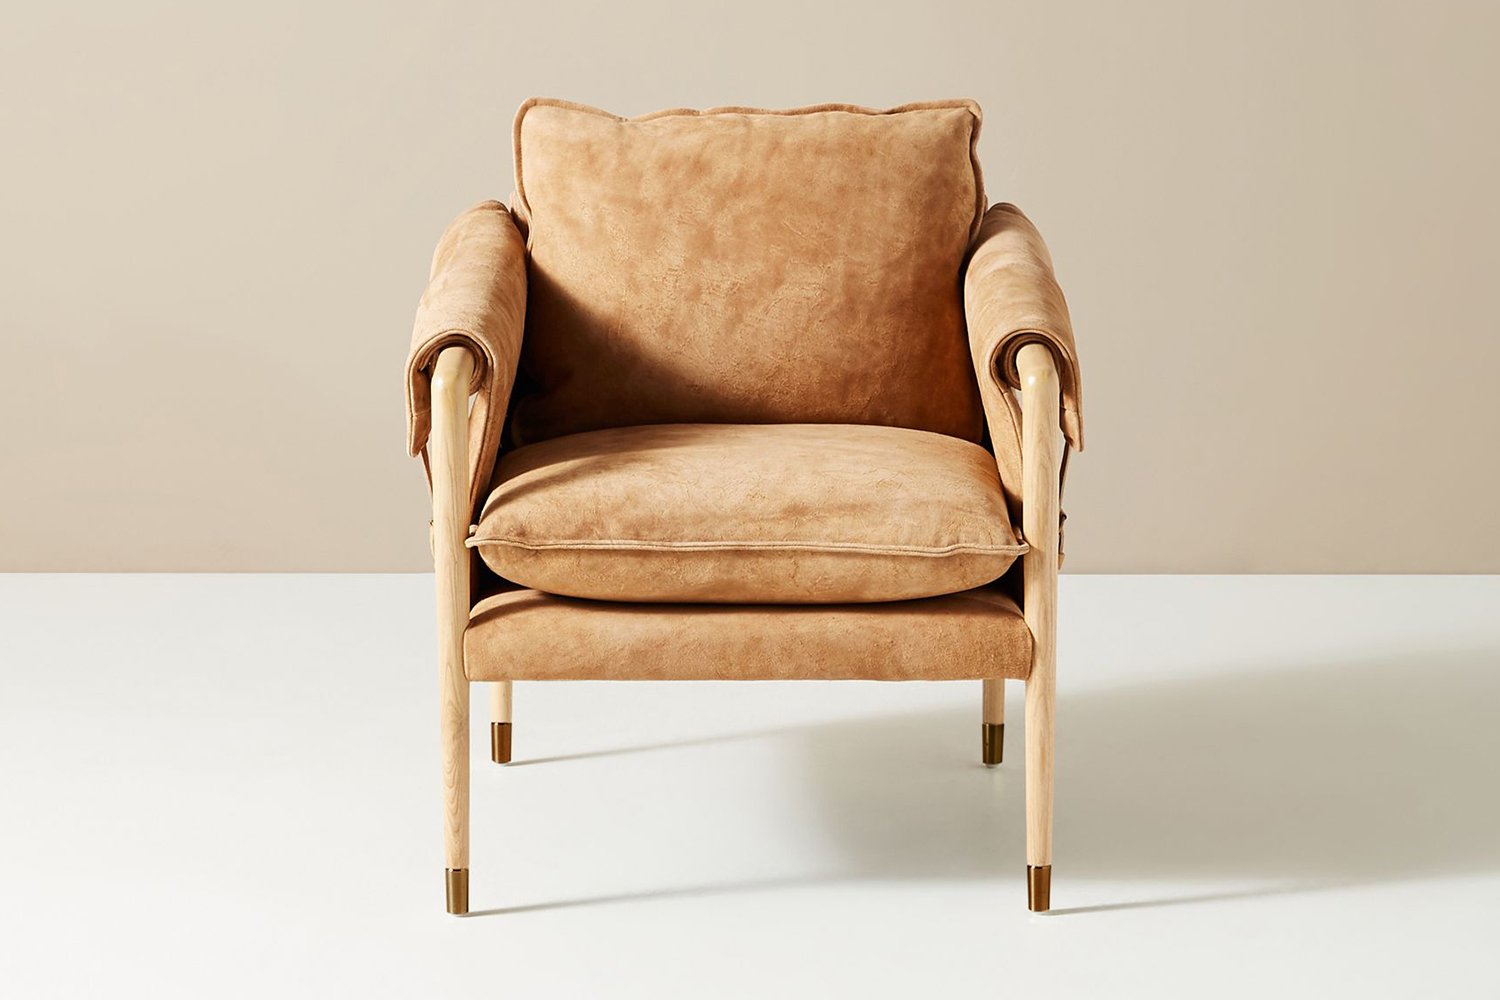 Havana Leather Chair in suede from Anthropologie